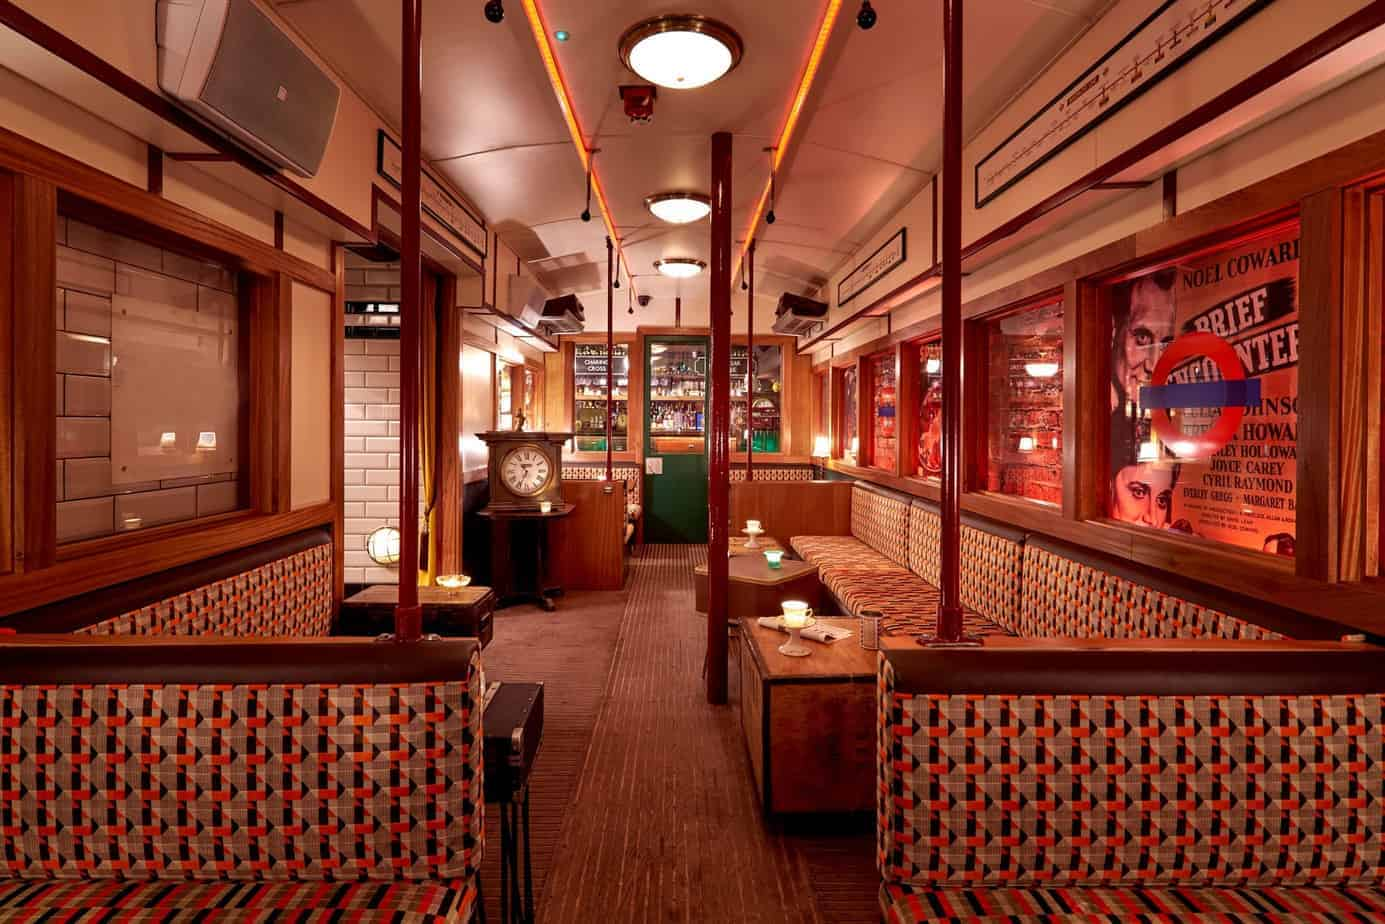 Bar with vintage London tube carriage